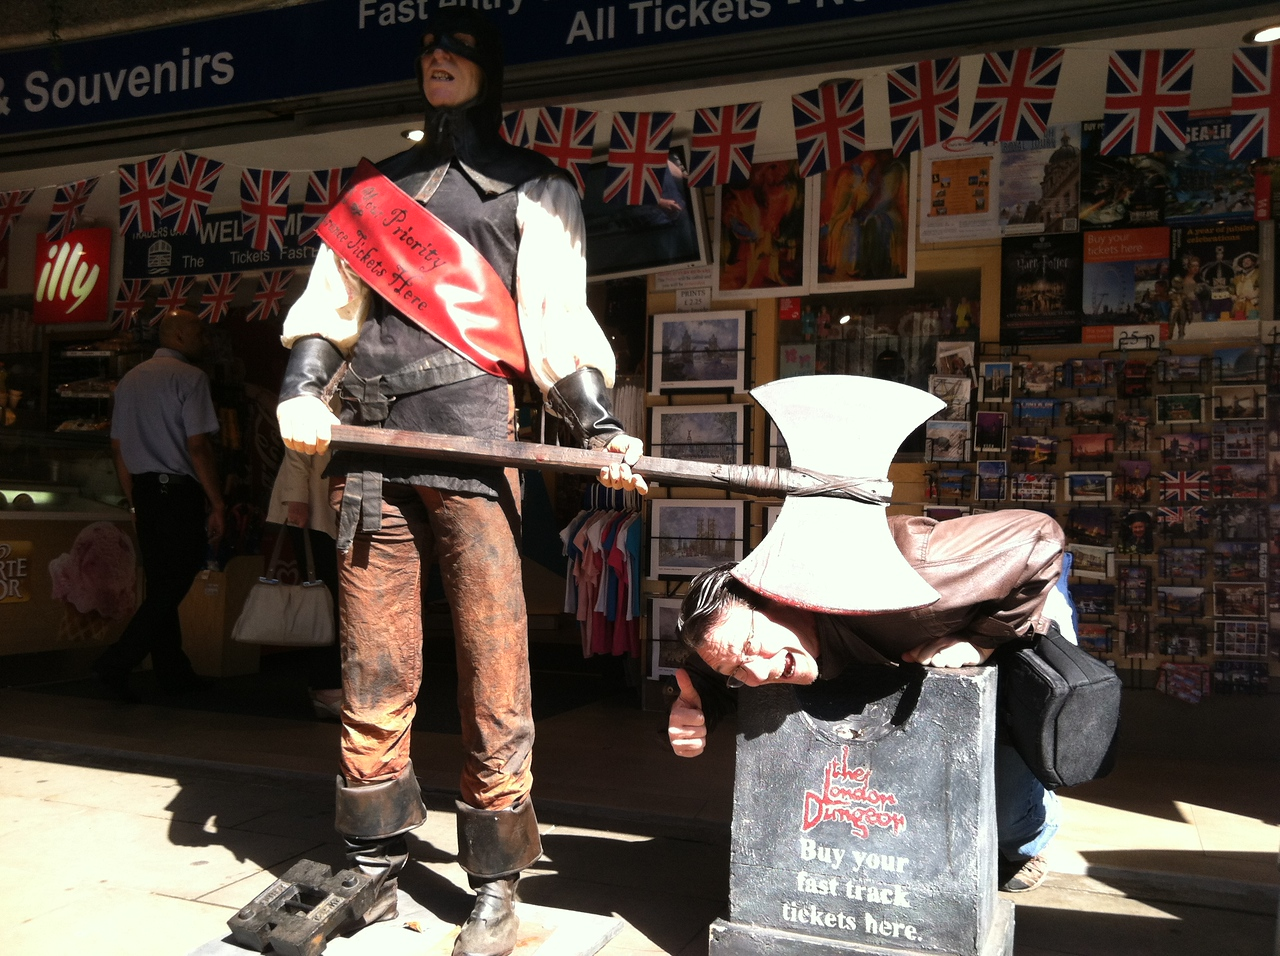 30 June 2012: Another touristy attraction shop, just across the way from the Tower of London.